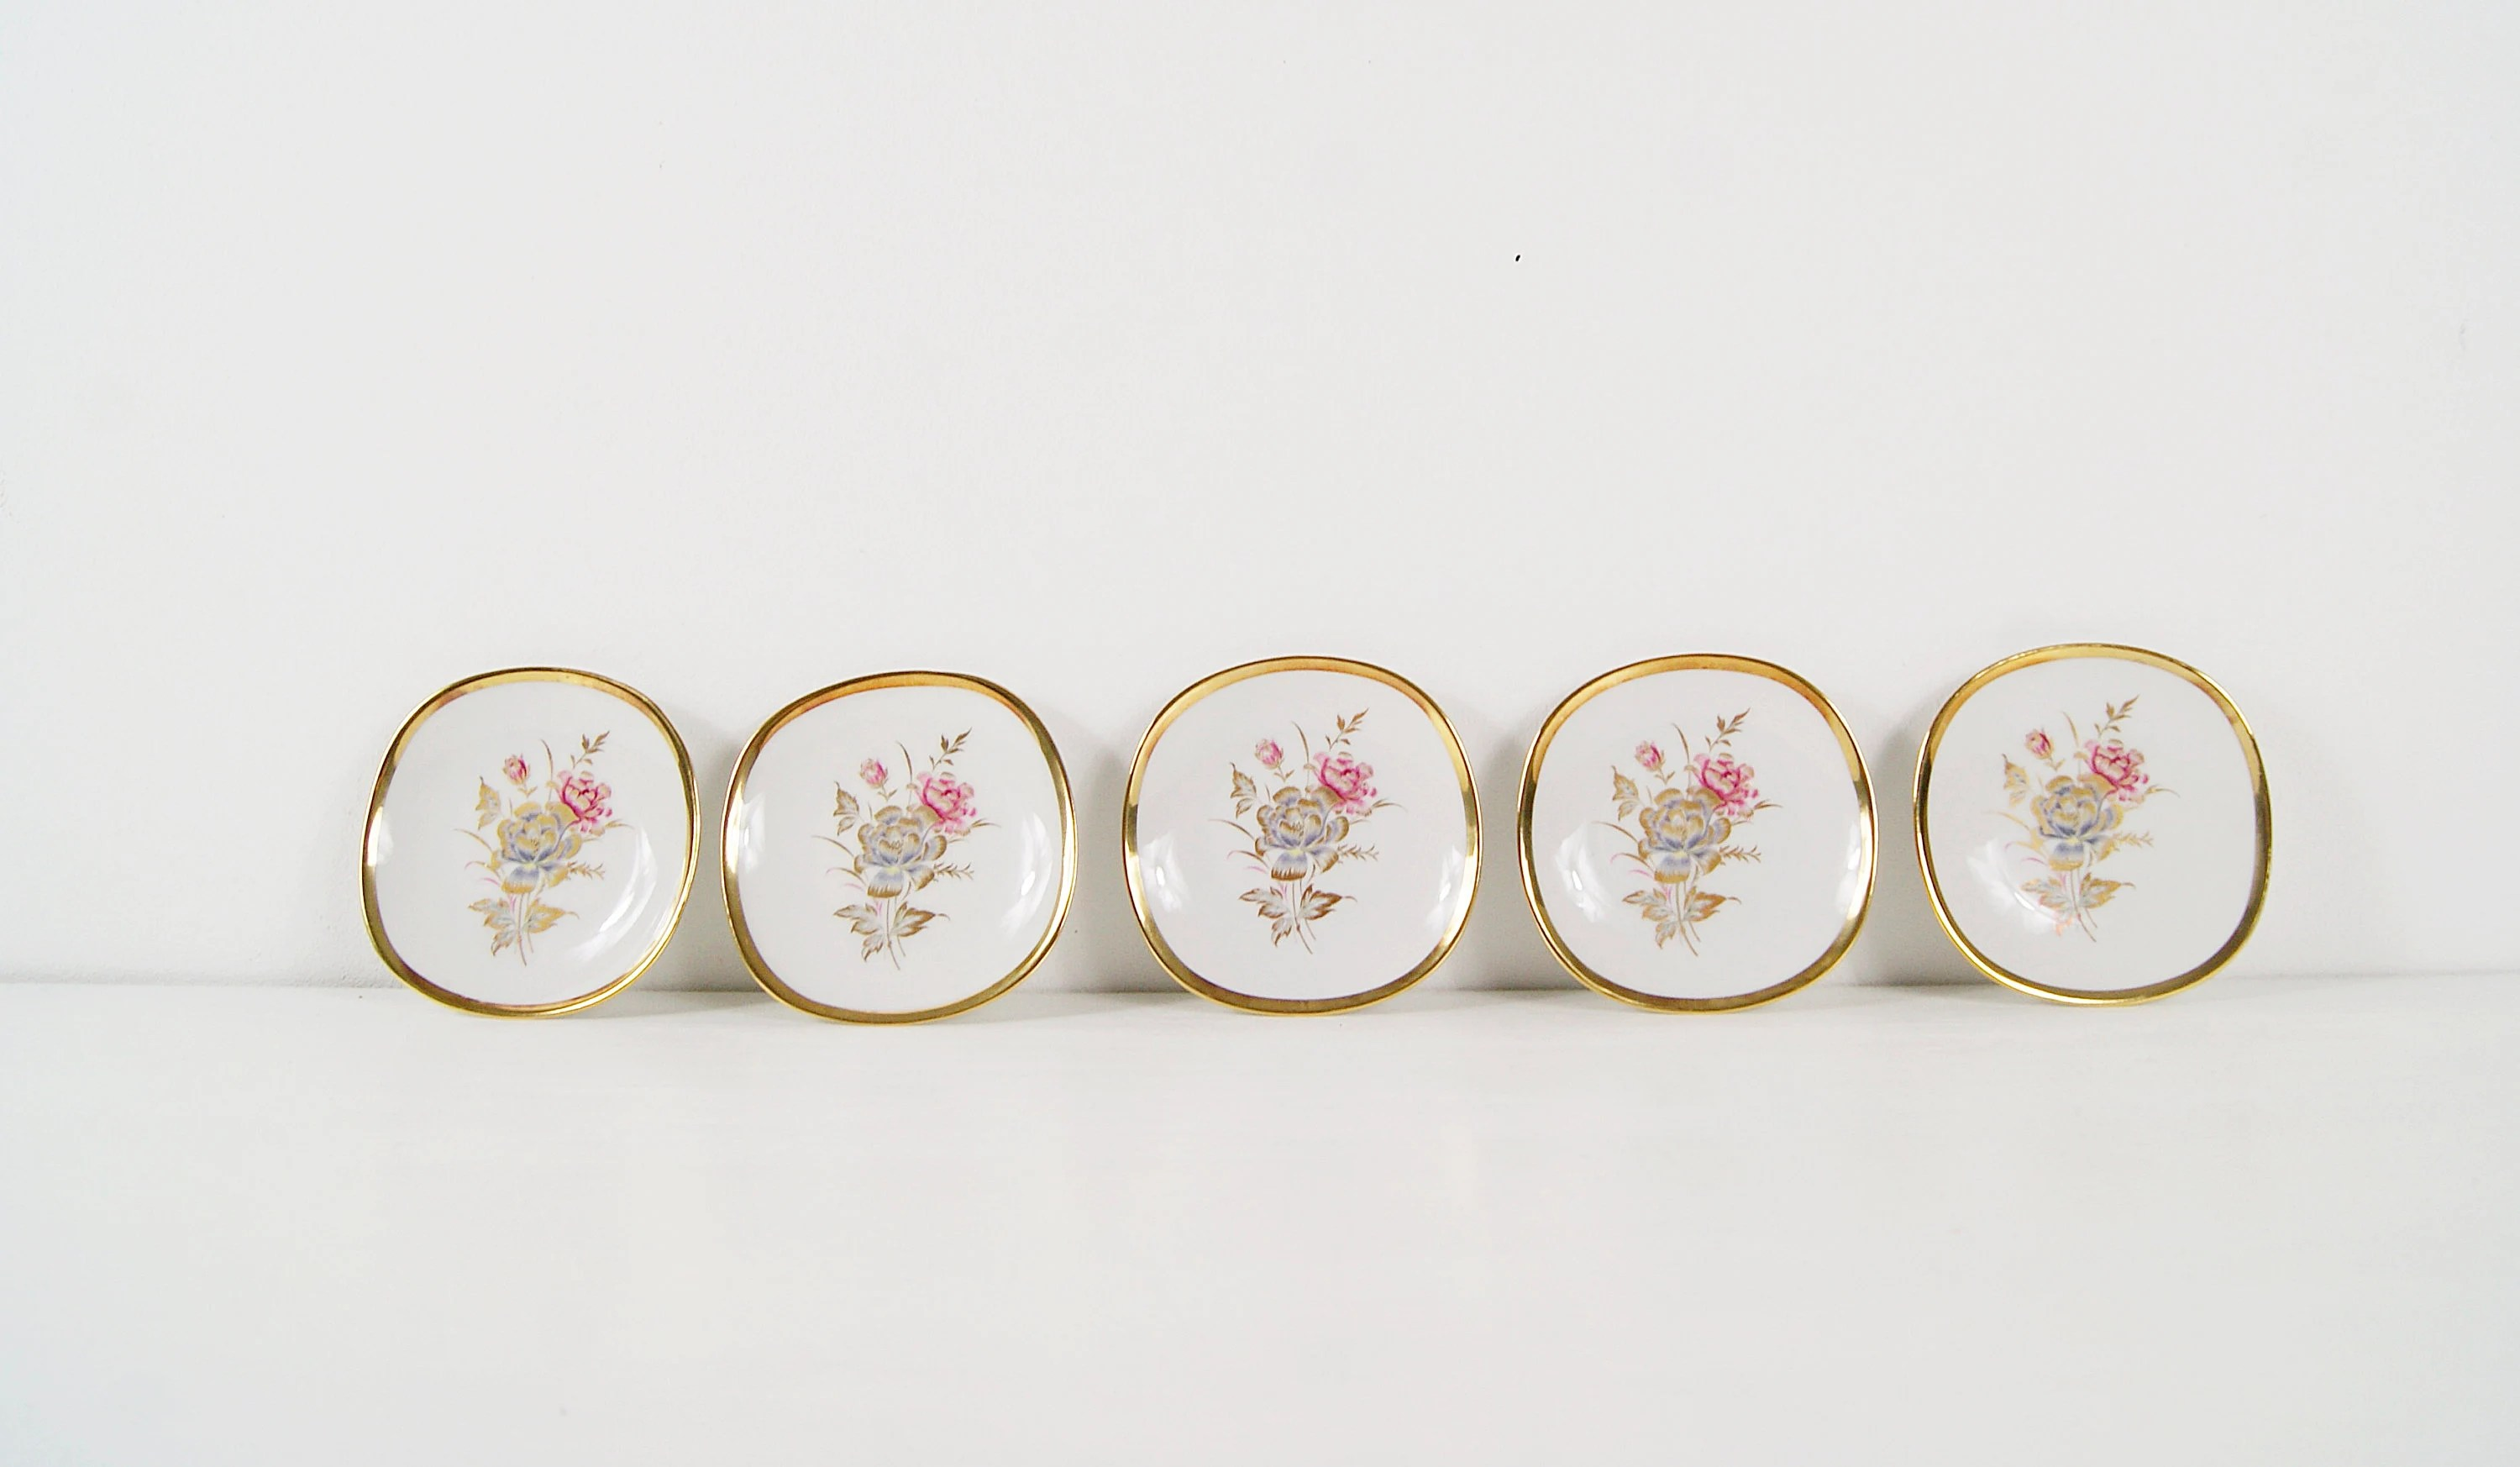 Teller Set Alka Art Teller Set 5 Piece With Floral Décor 1950s Porcelain